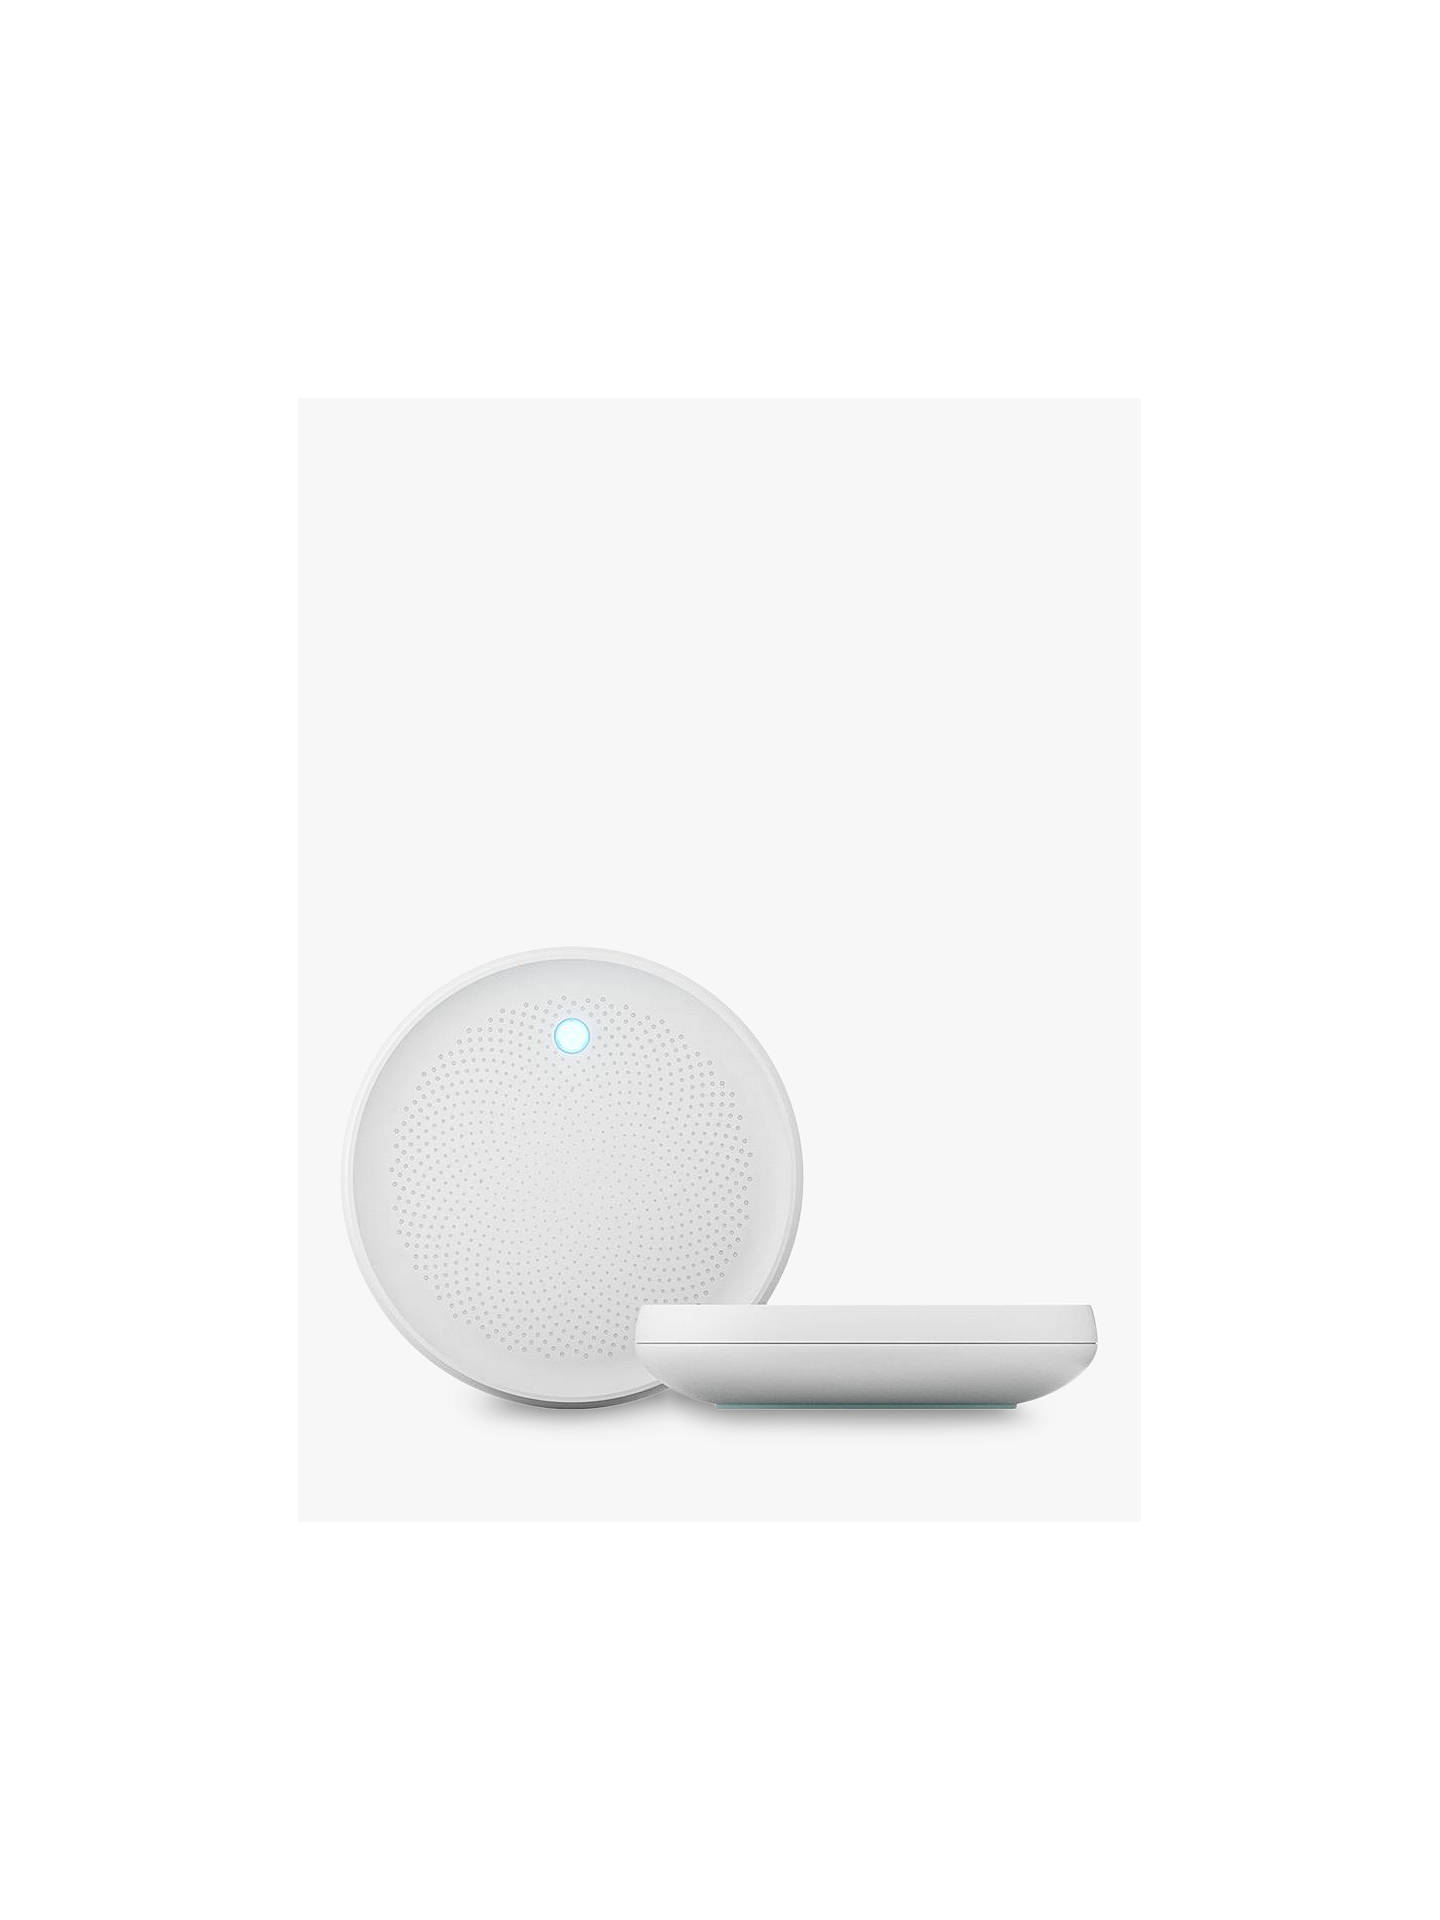 Buy Dodow Relaxation and Sleep Aid Light Online at johnlewis.com